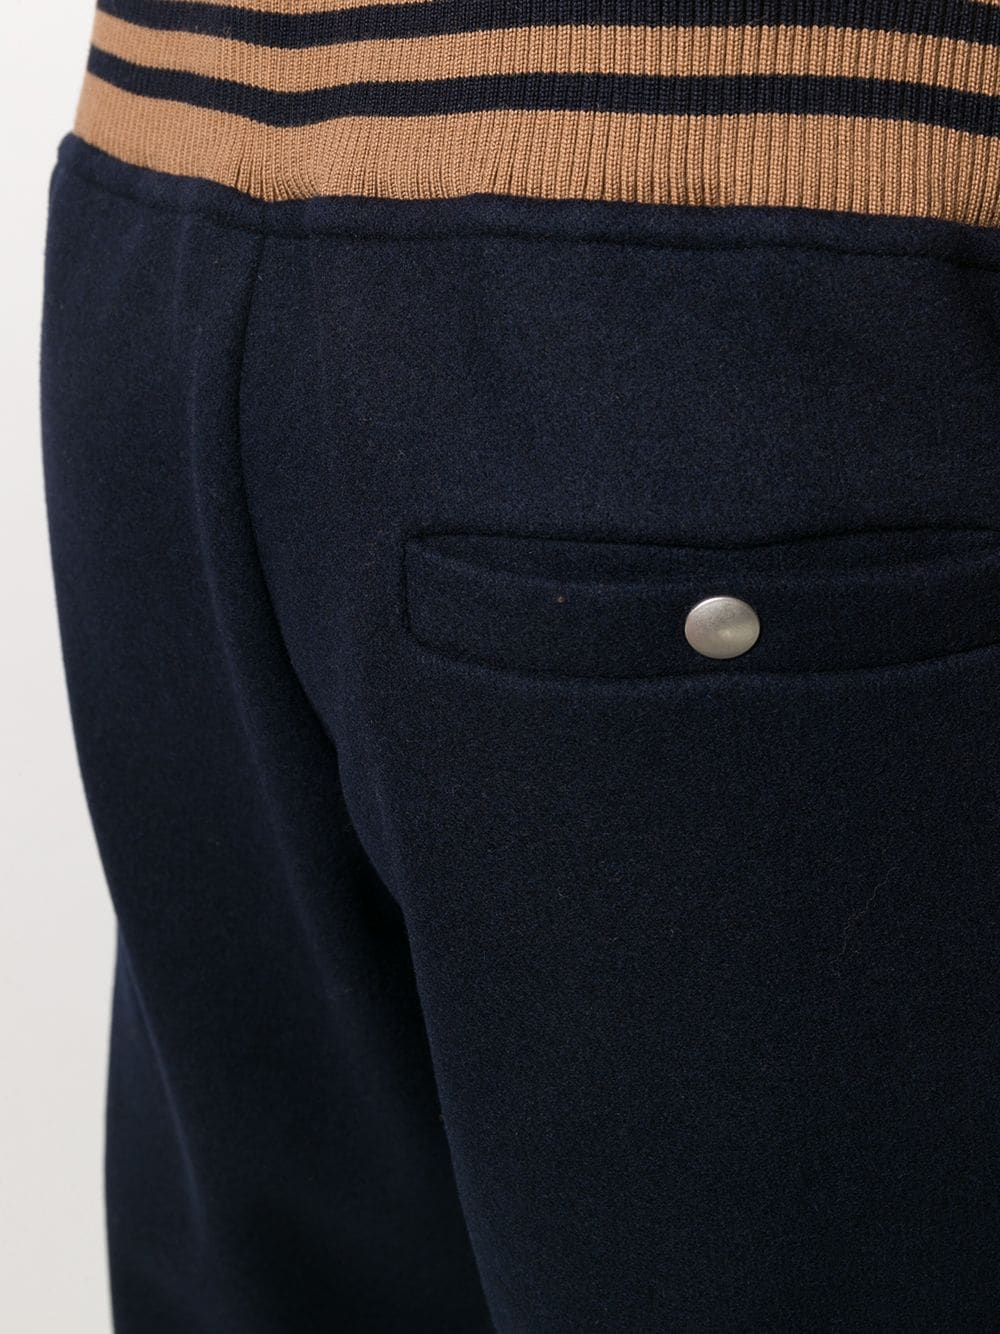 Dark blue wool-blend track trousers featuring knitted construction ELEVENTY |  | B71PANB02-TES0B19711